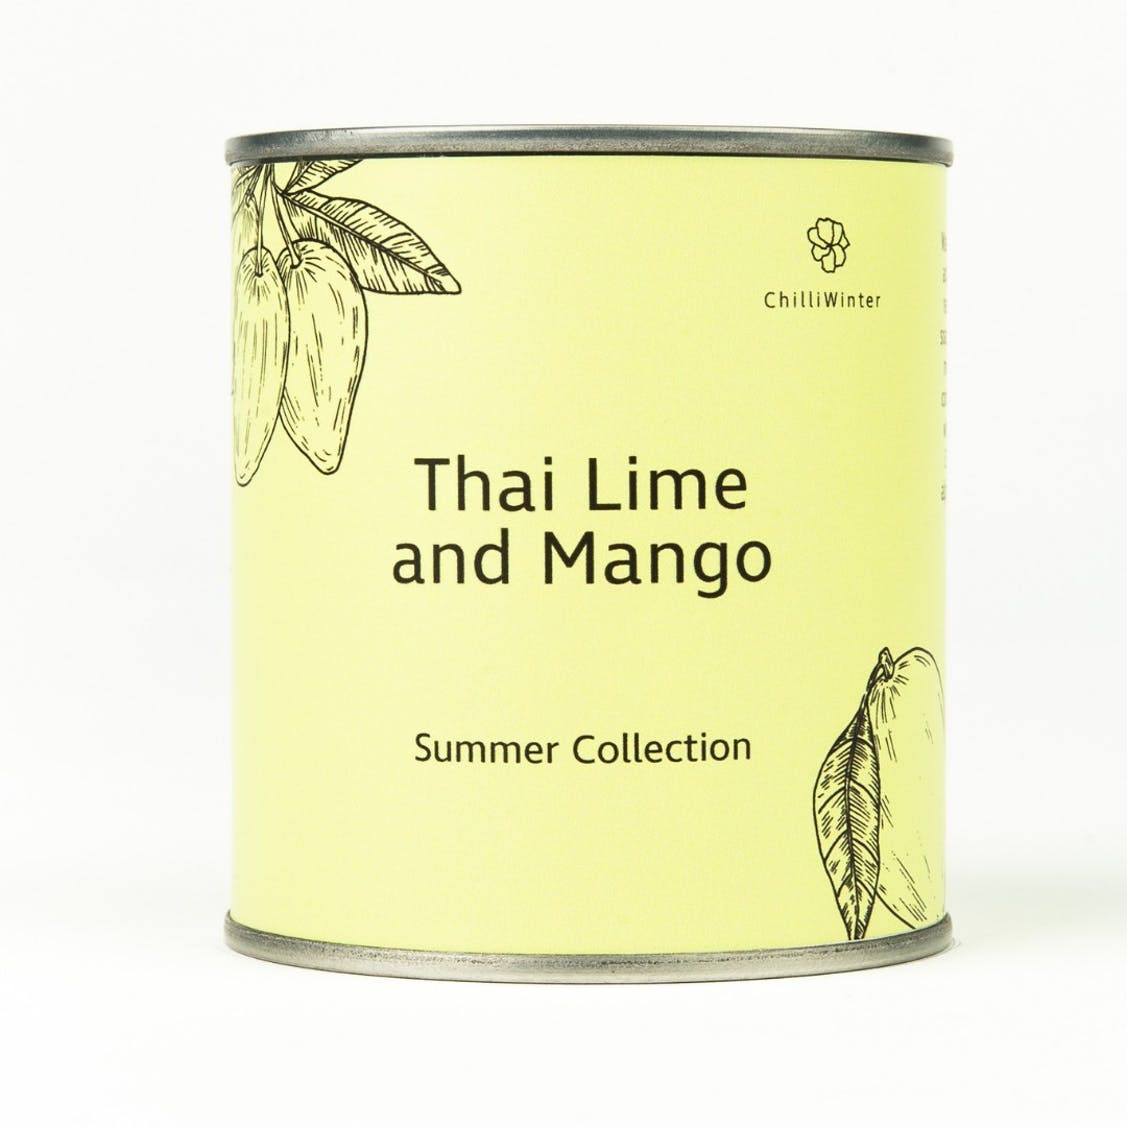 Chilliwinter Candle - Thai Lime and Mango